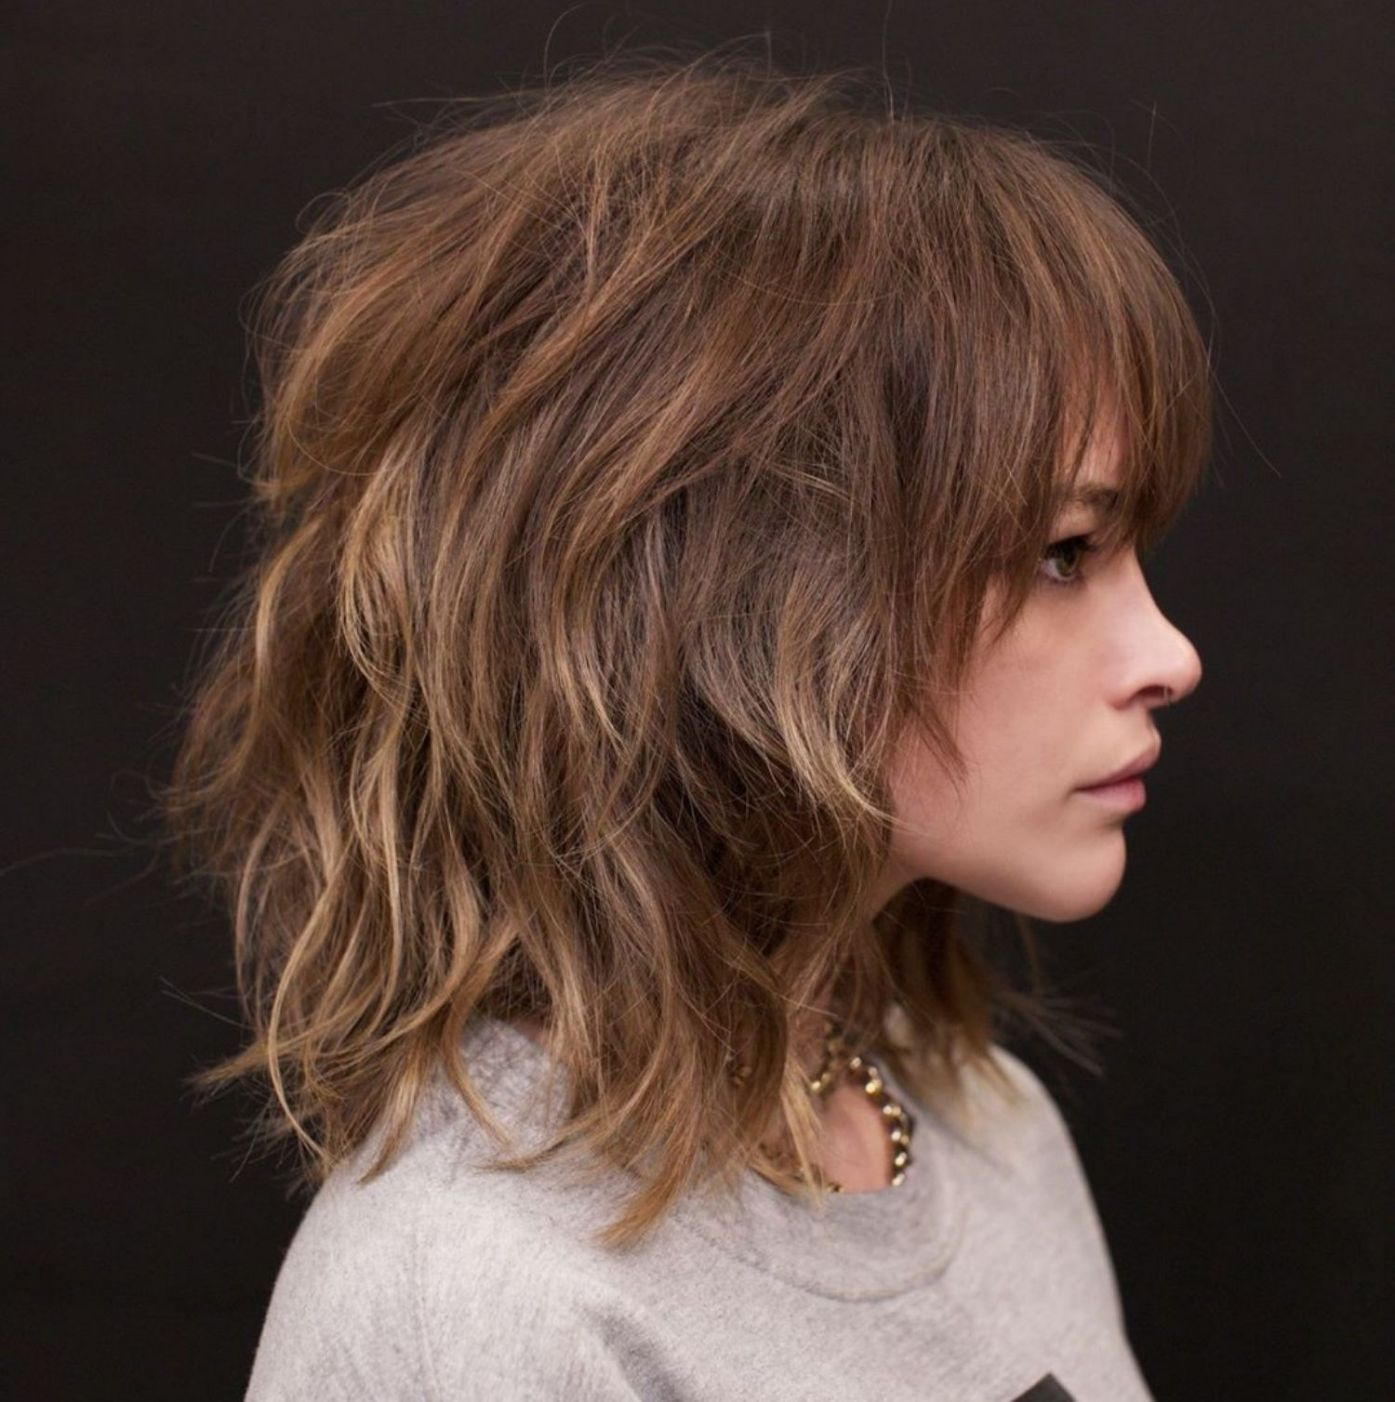 Shag Hairstyles – How To Achieve Beautiful Looking Hair With These Easy To Apply Hair Styles